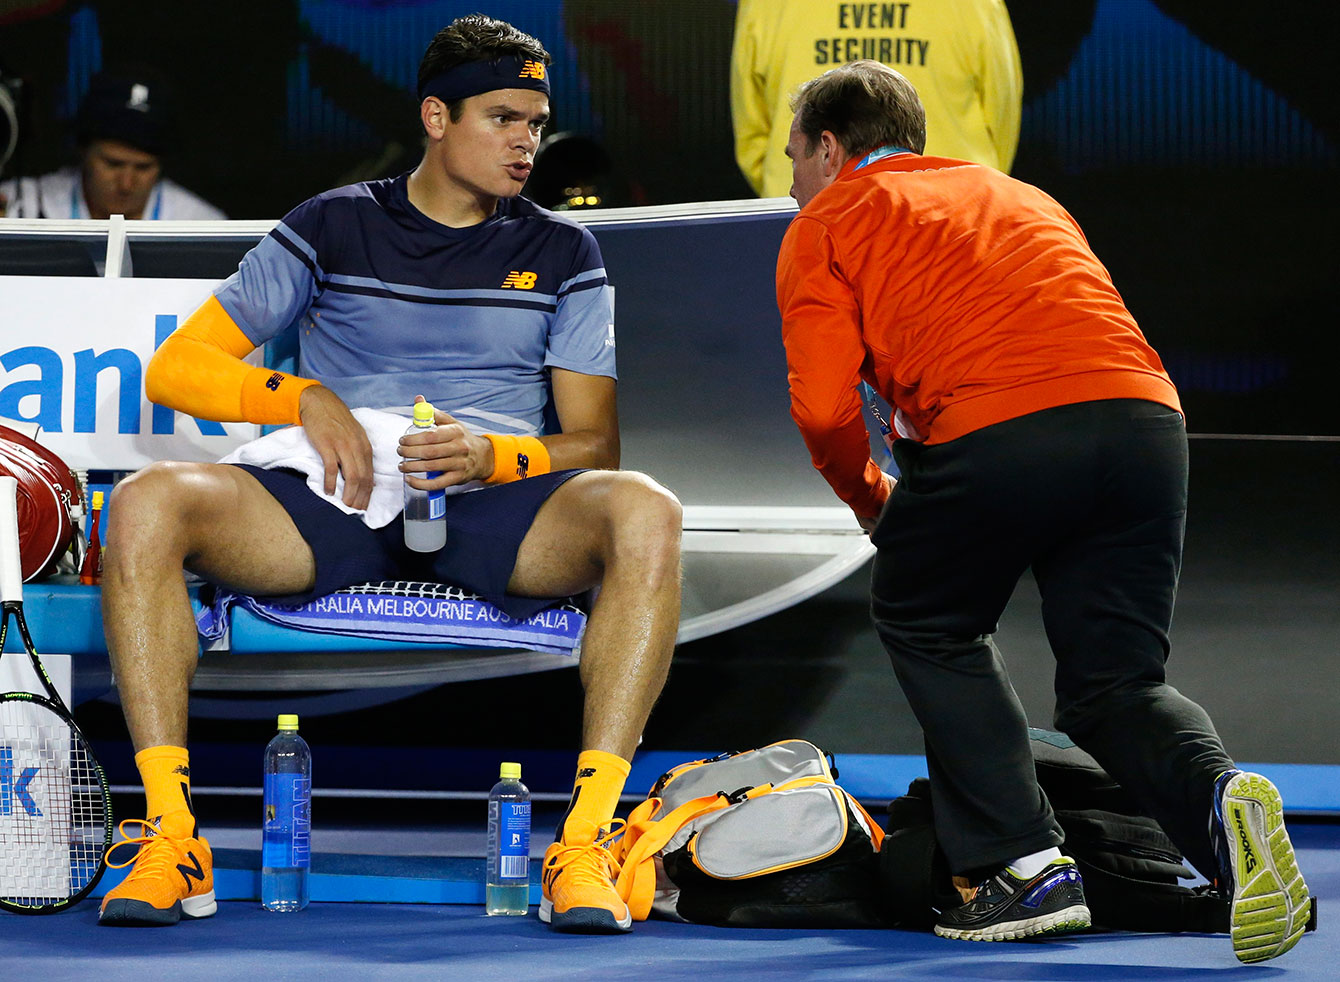 Milos Raonic speaks to a trainer during the fourth set at the Australian Open semifinals on January 29, 2016.